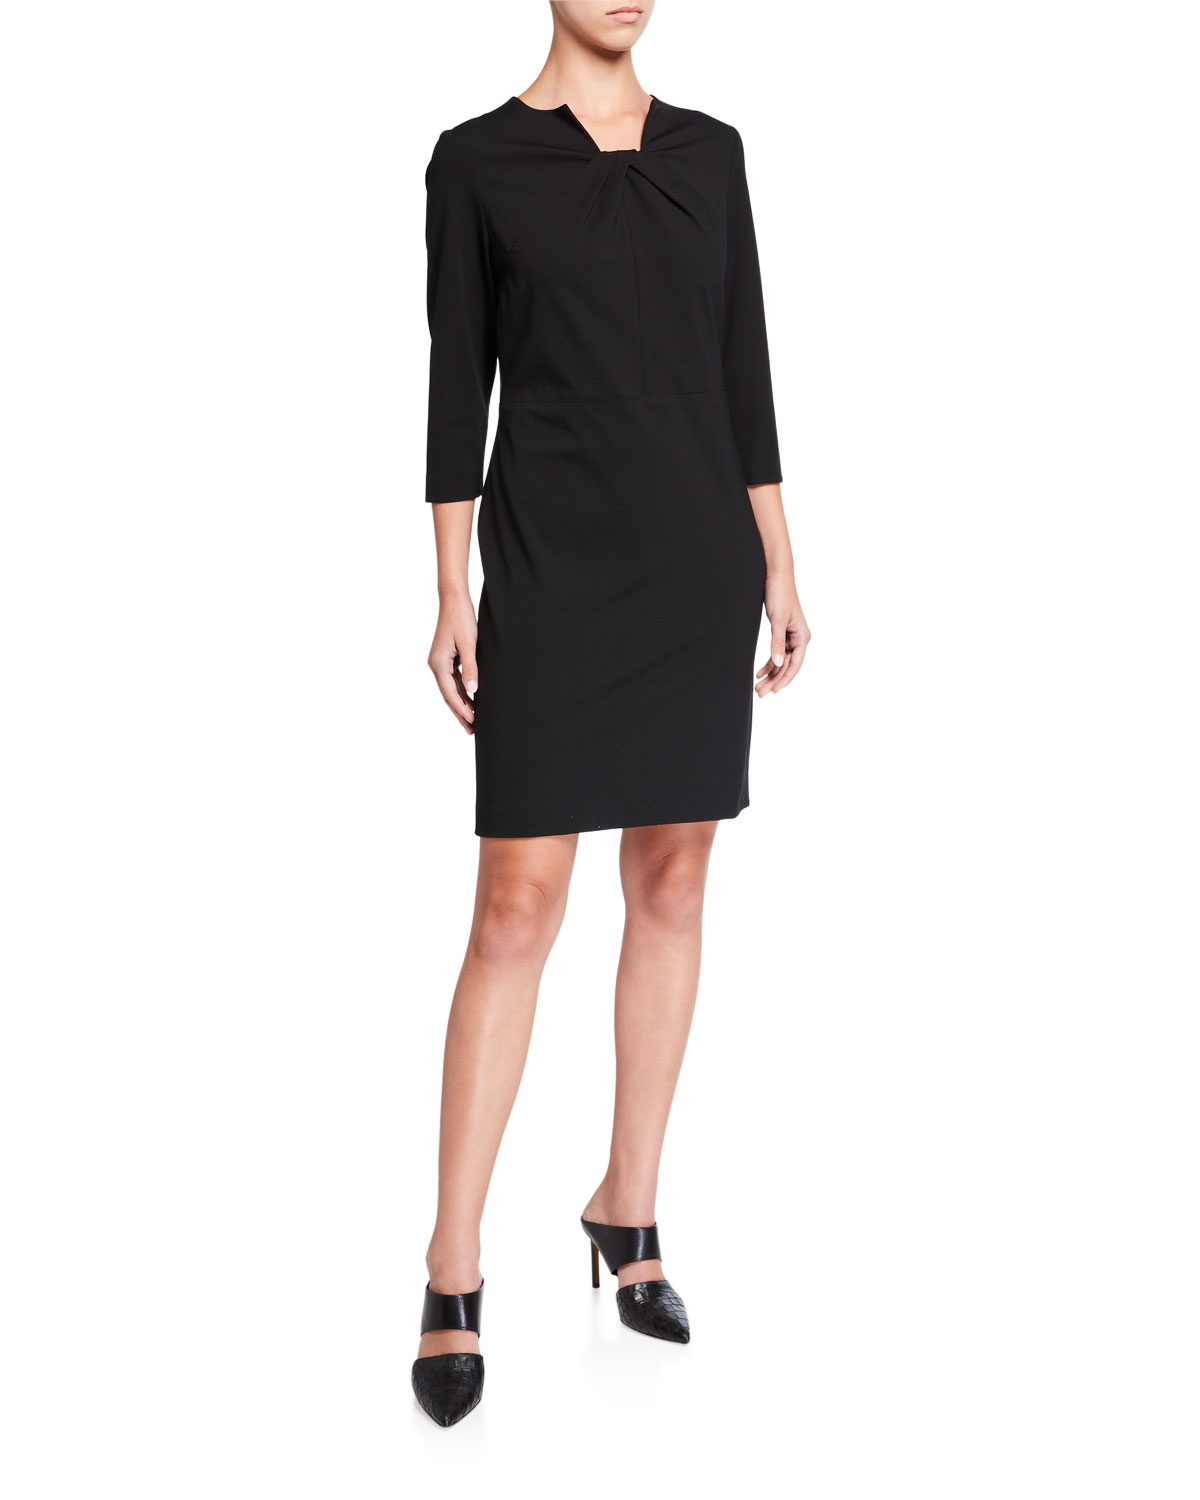 Misook Plus Size Ruched Square-Neck 3/4-Sleeve Ponte Dress